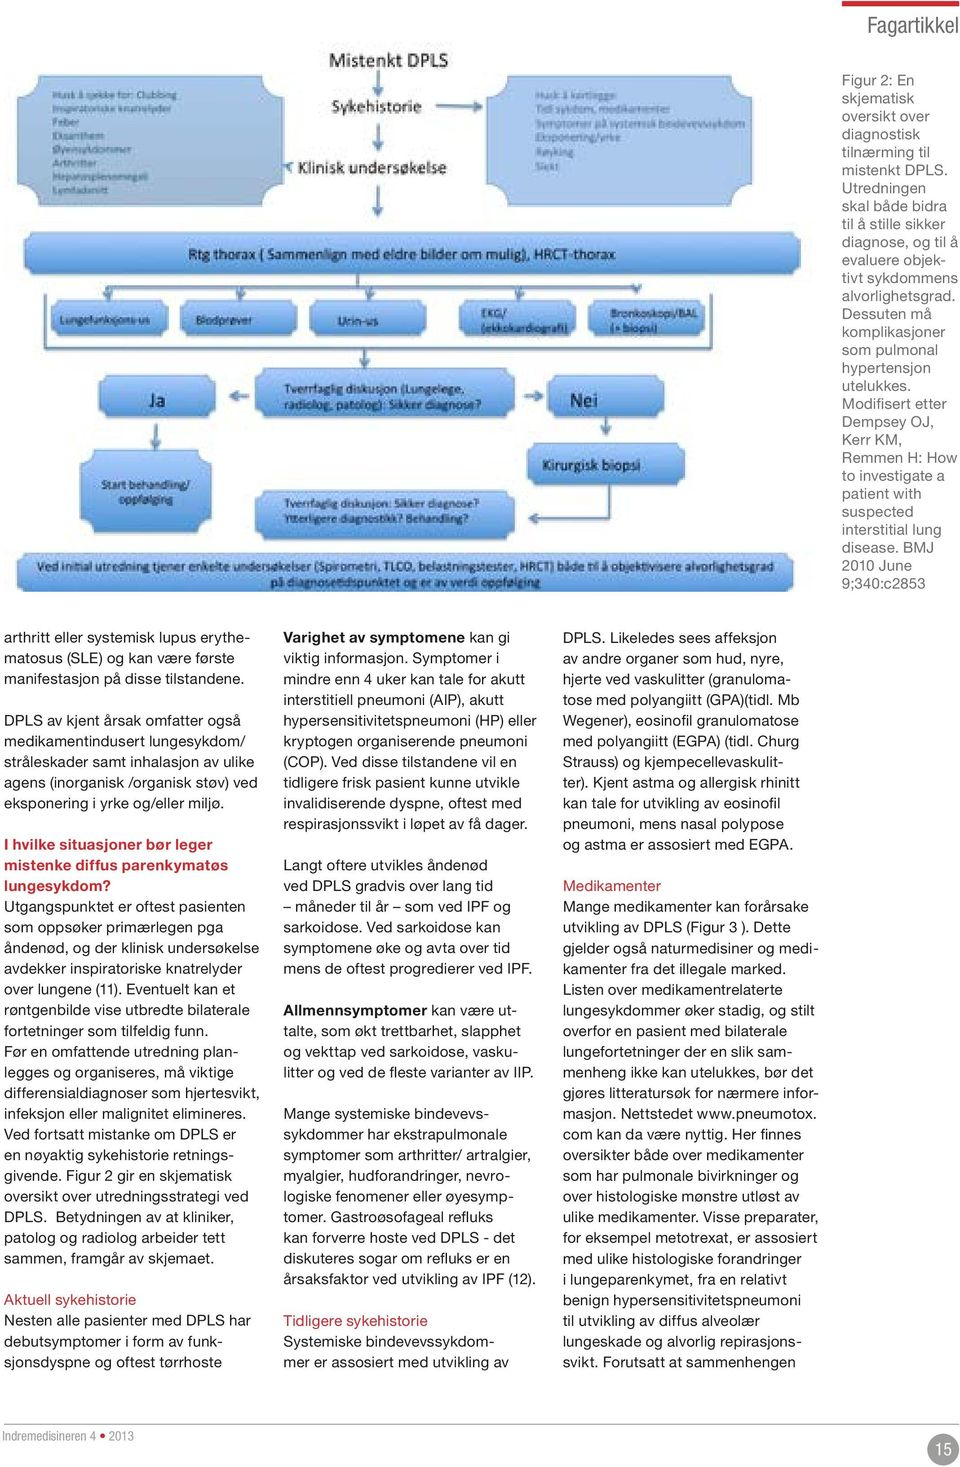 Modifisert etter Dempsey OJ, Kerr KM, Remmen H: How to investigate a patient with suspected interstitial lung disease.